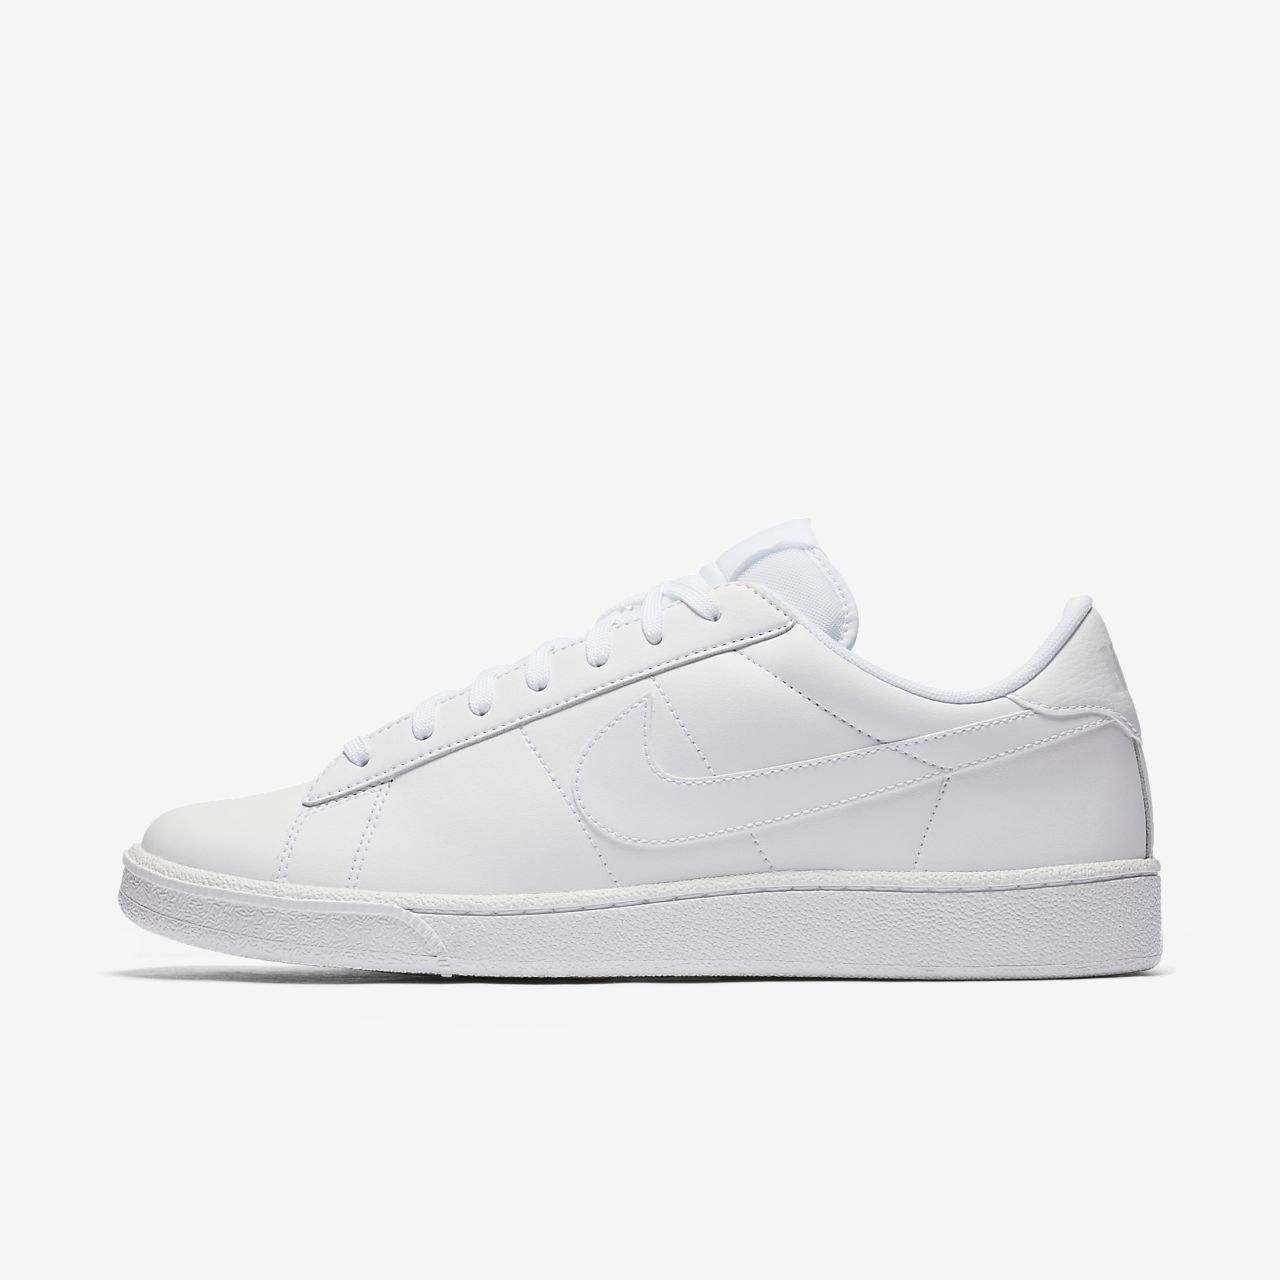 e54f8005164a White Leather Nike Shoes